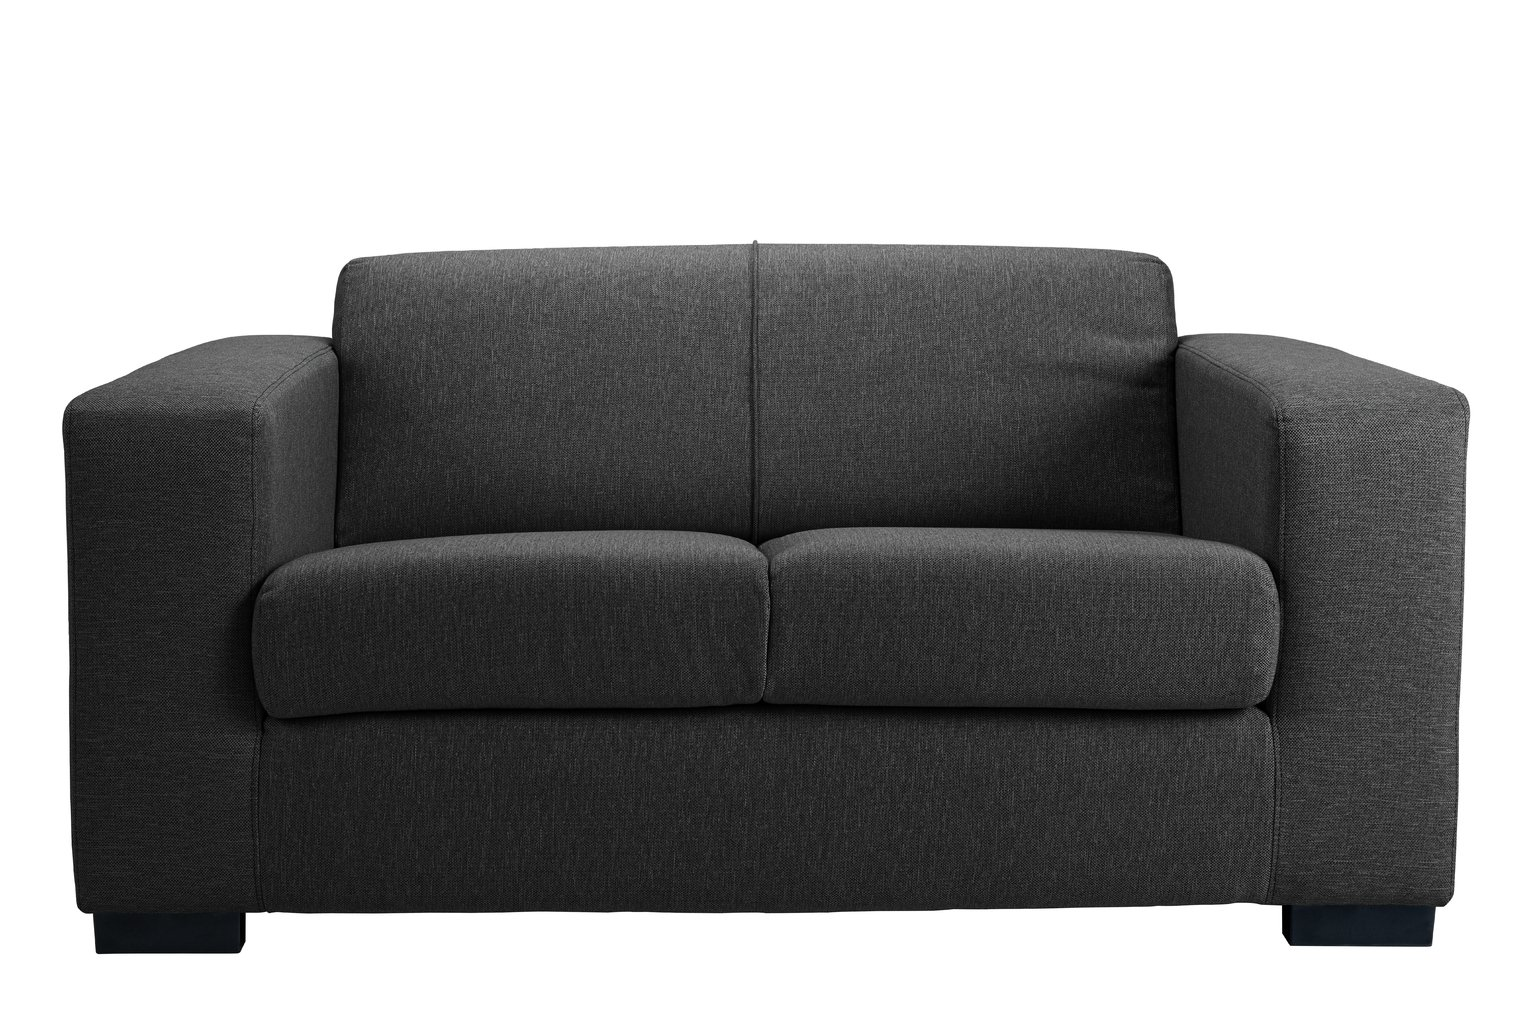 Hygena New Ava Compact 2 Seater Fabric Sofa   Charcoal